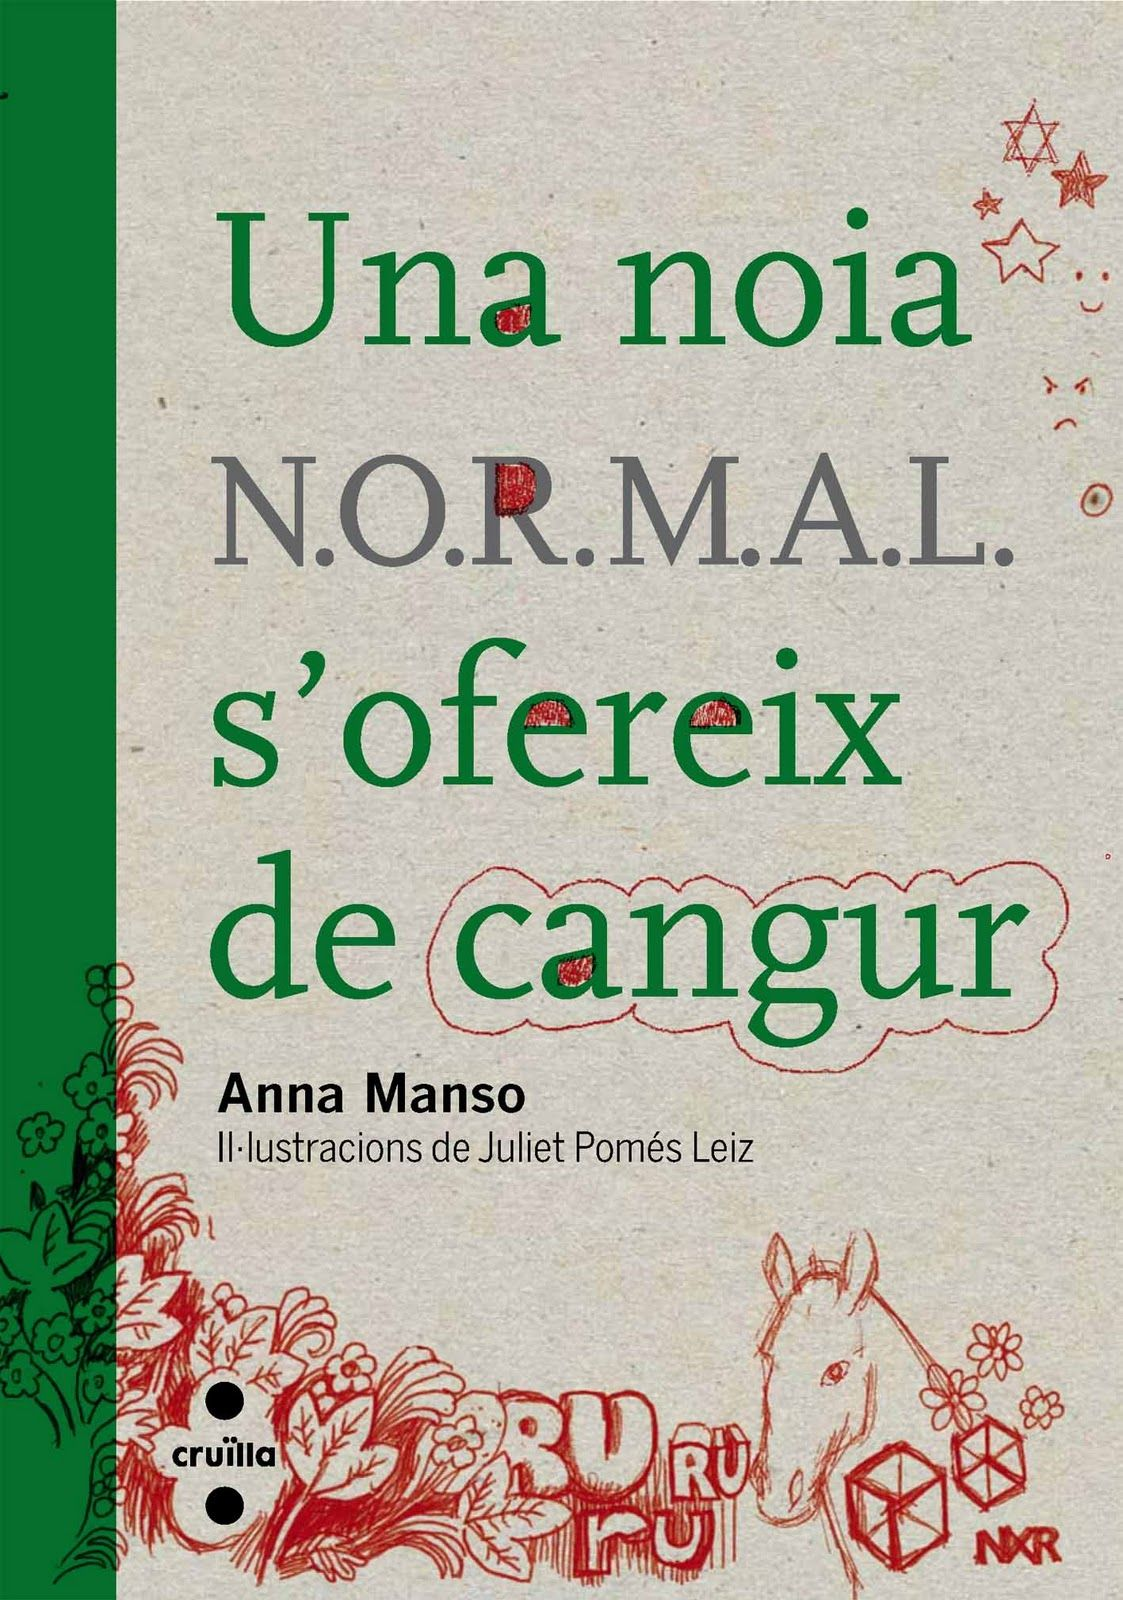 """Una noia N.O.R.M.A.L s'ofereix de cangur"" d'Anna Manso"